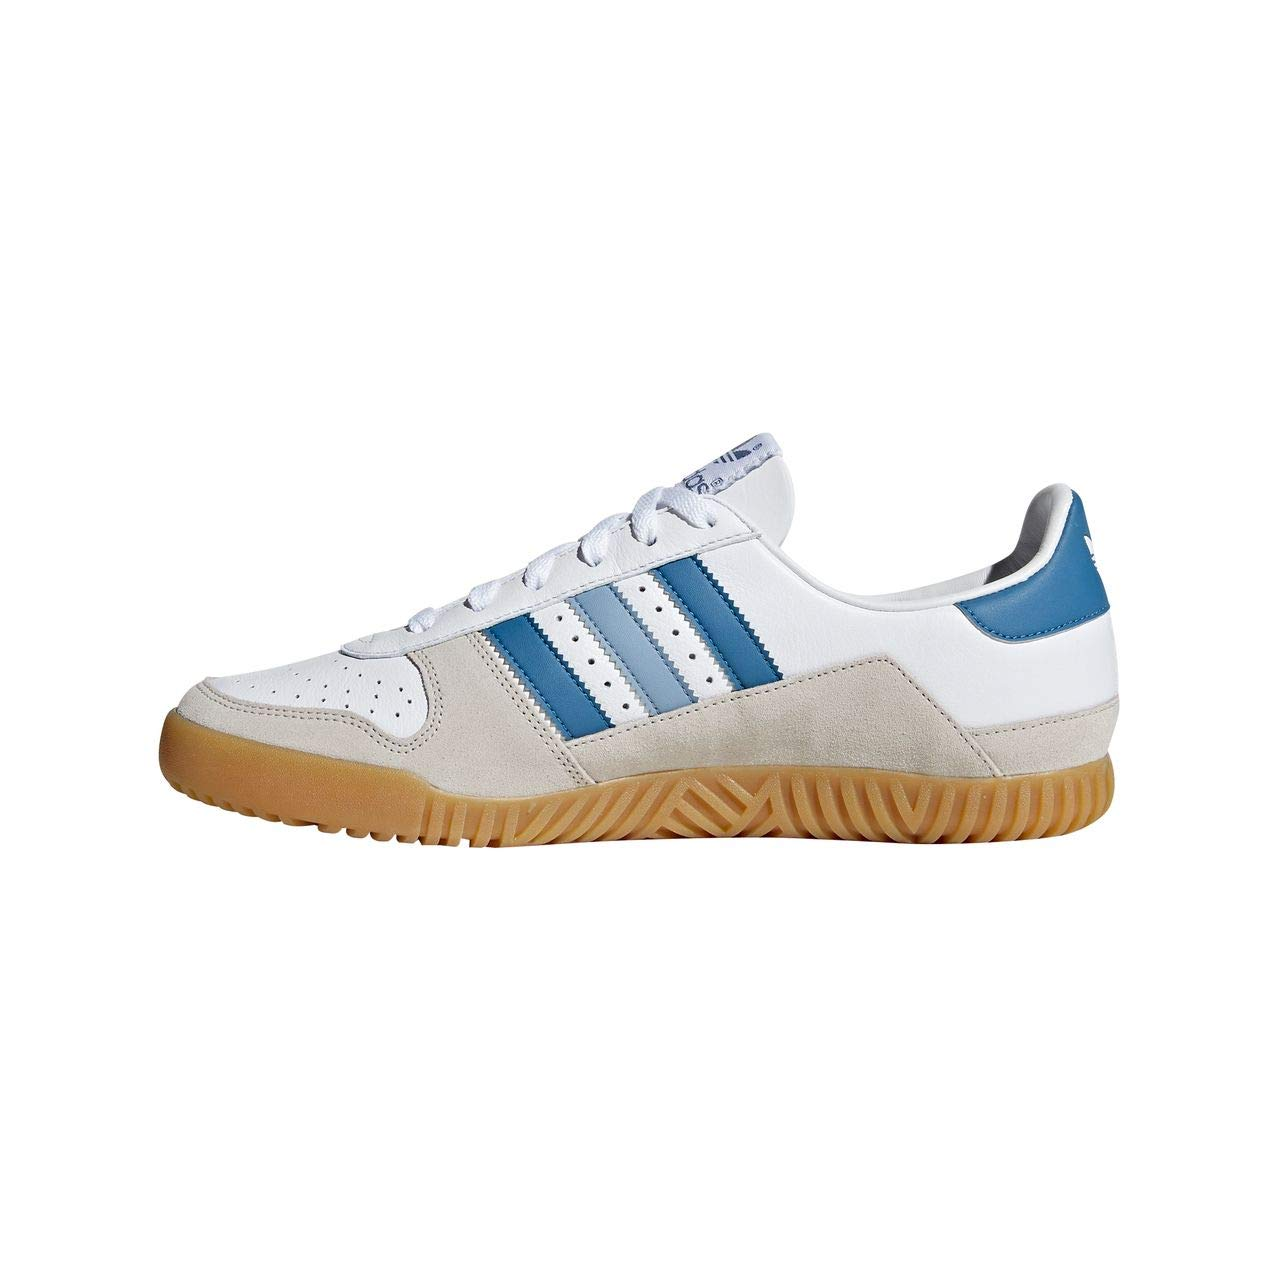 a495d2316bafd adidas Men s Indoor Comp Spzl Cross Trainers  Amazon.co.uk  Shoes   Bags